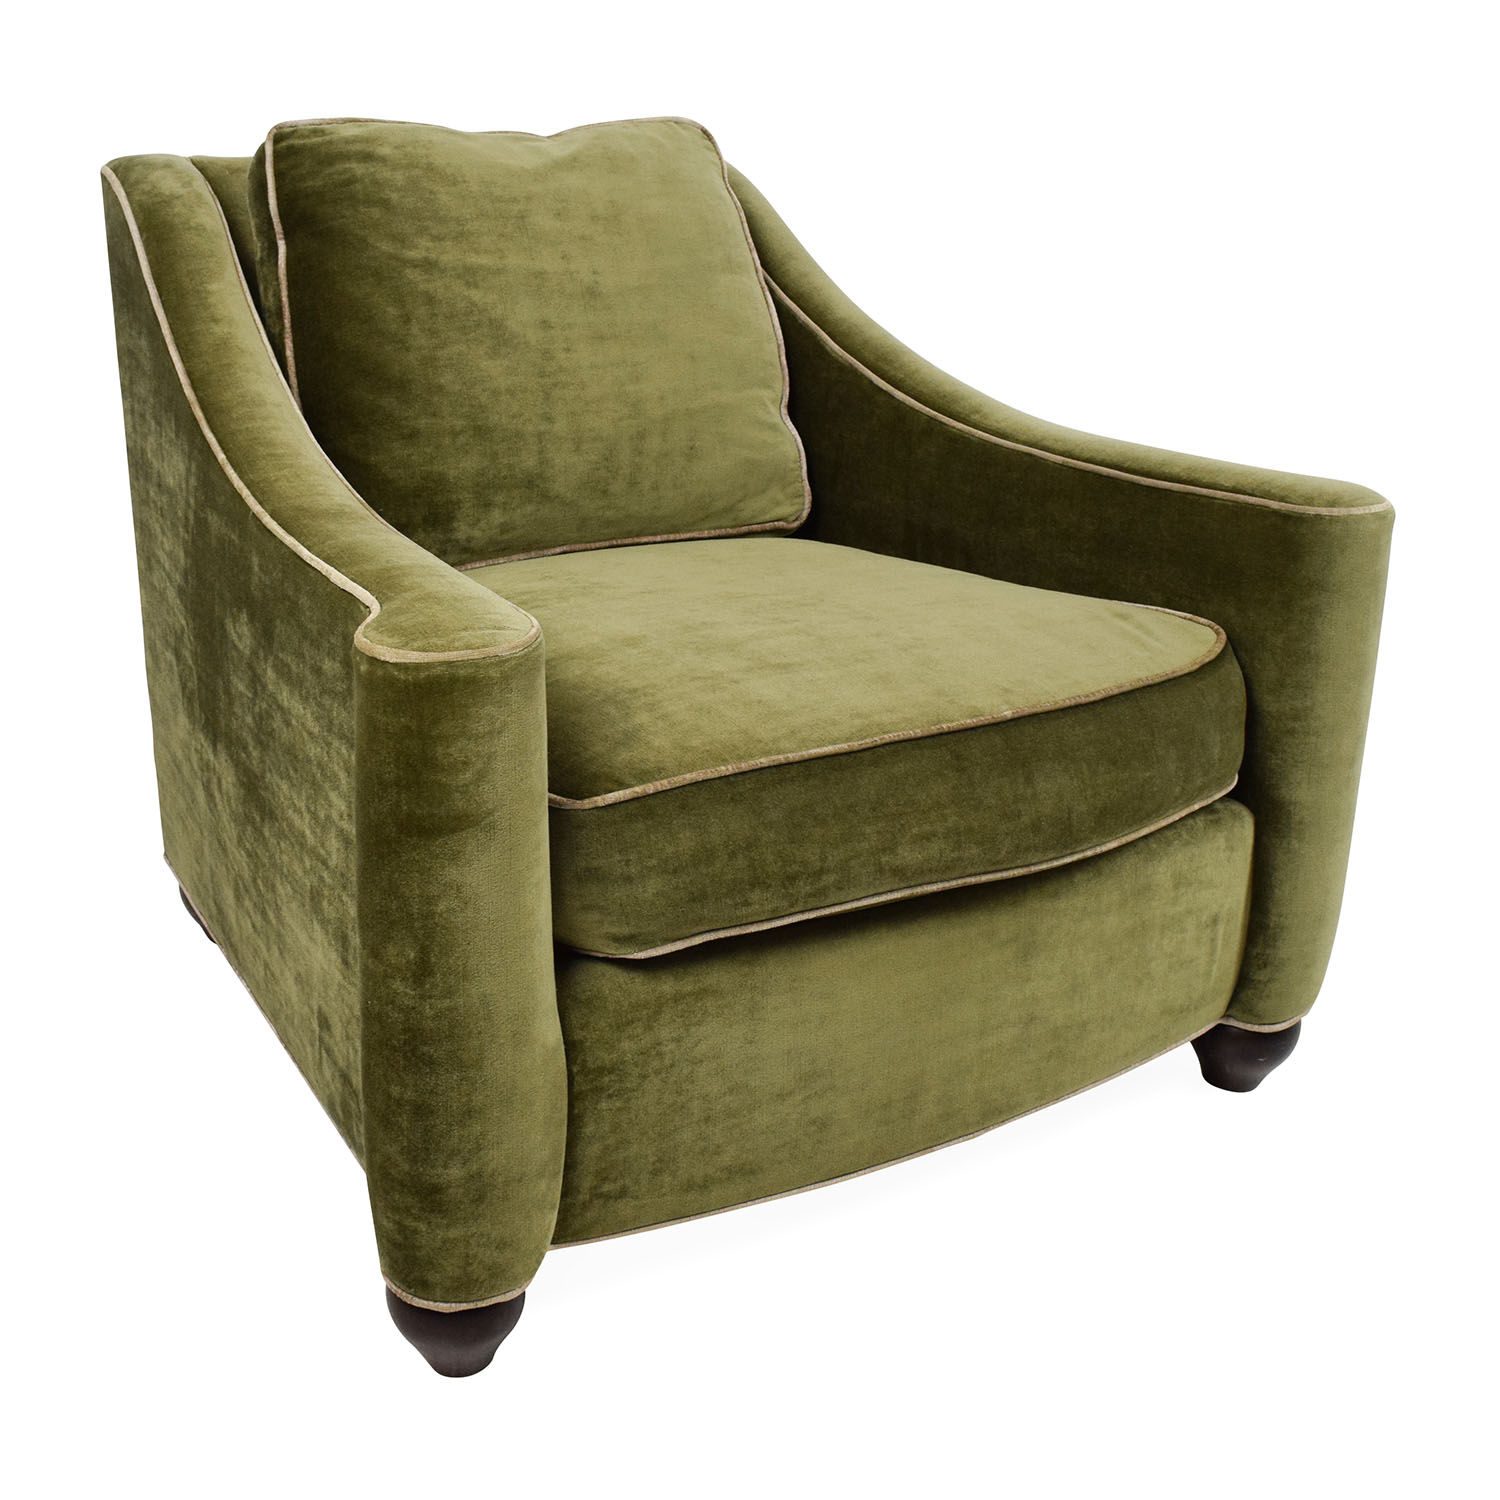 Domain Home Domain Home Classic Chair on sale. 74  OFF   Domain Home Domain Home Classic Chair   Chairs